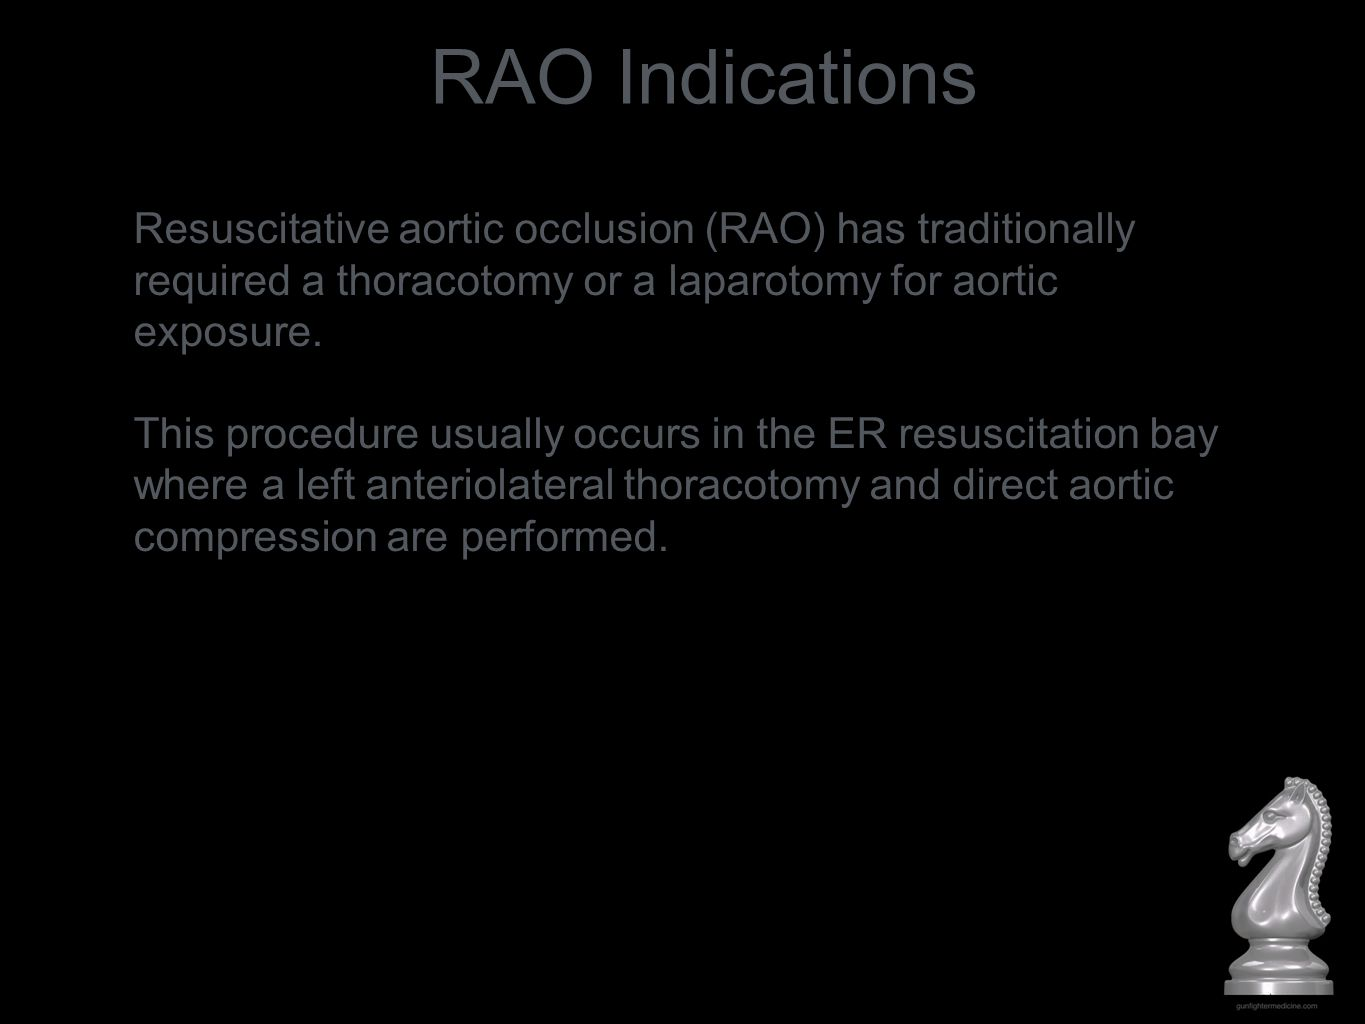 RAO Indications Resuscitative aortic occlusion (RAO) has traditionally required a thoracotomy or a laparotomy for aortic exposure.